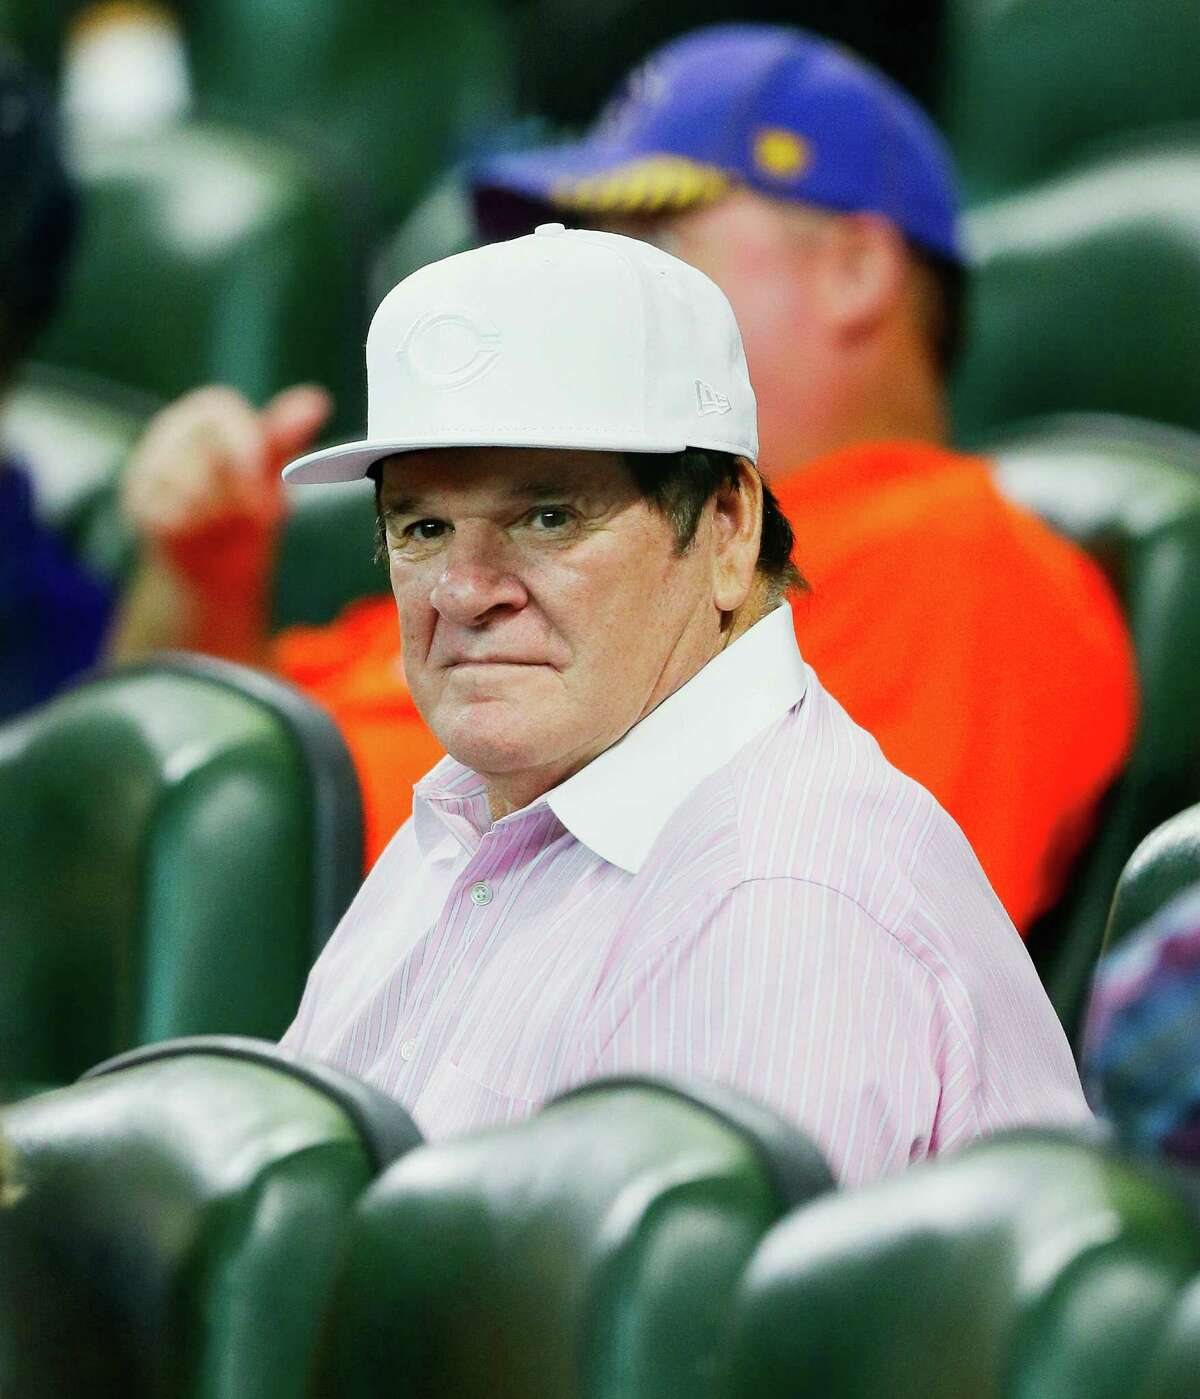 HOUSTON, TX - JUNE 17: Former Cincinnati Reds player and manager Pete Rose watches as the Cincinnati Reds play the Houston Astros at Minute Maid Park on June 17, 2016 in Houston, Texas.